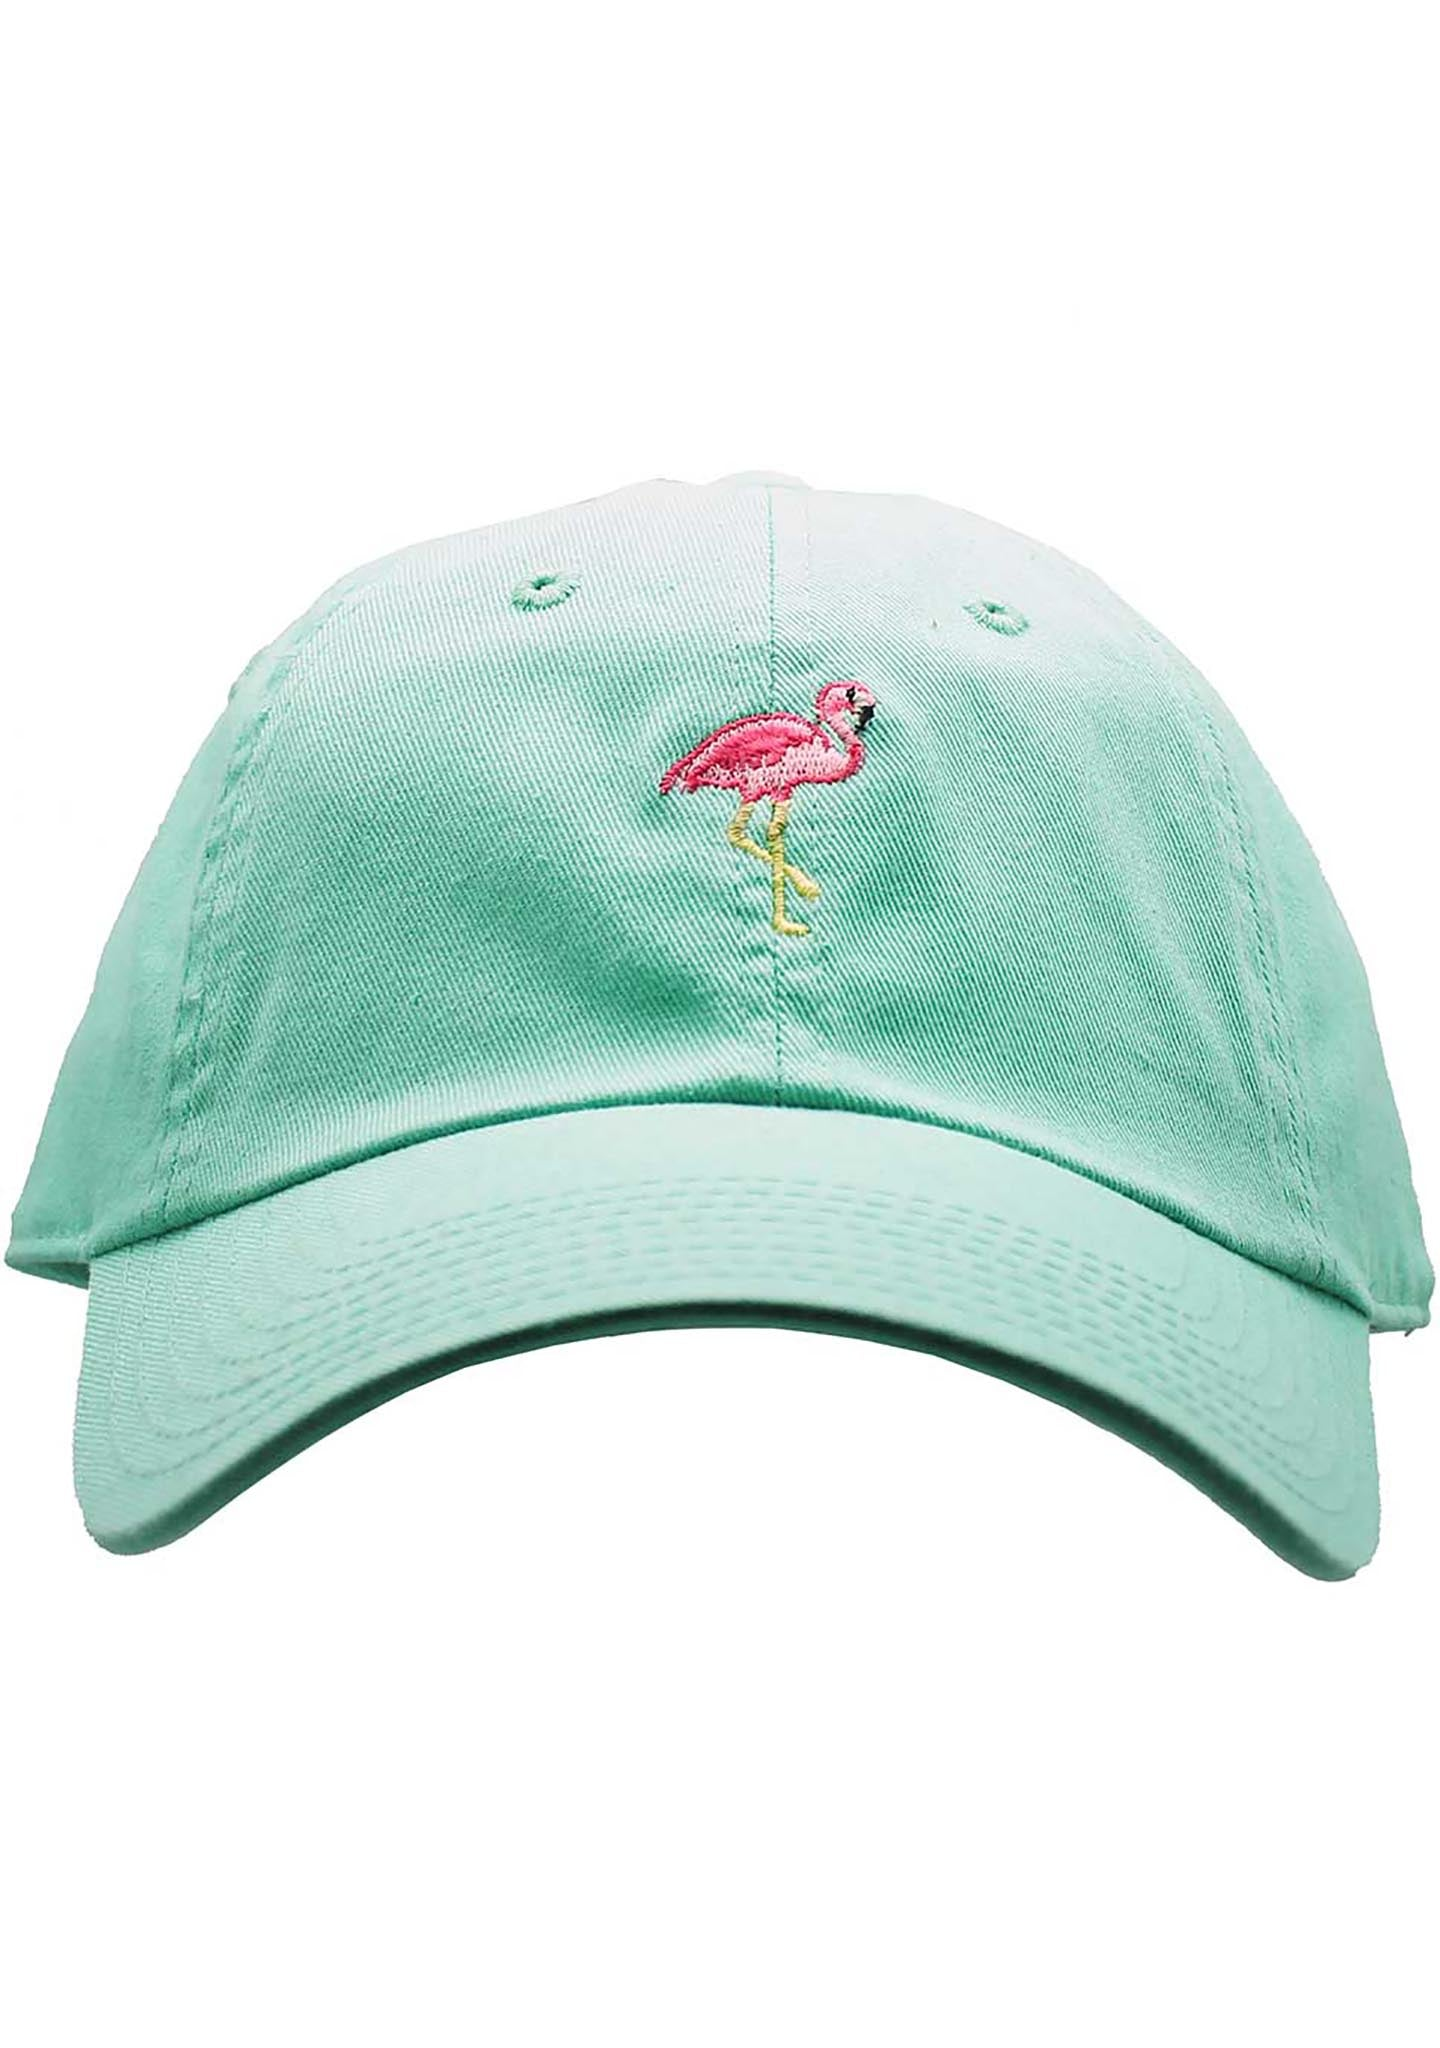 American Needle Flamingo Micro Dad Hat 87feae2336d